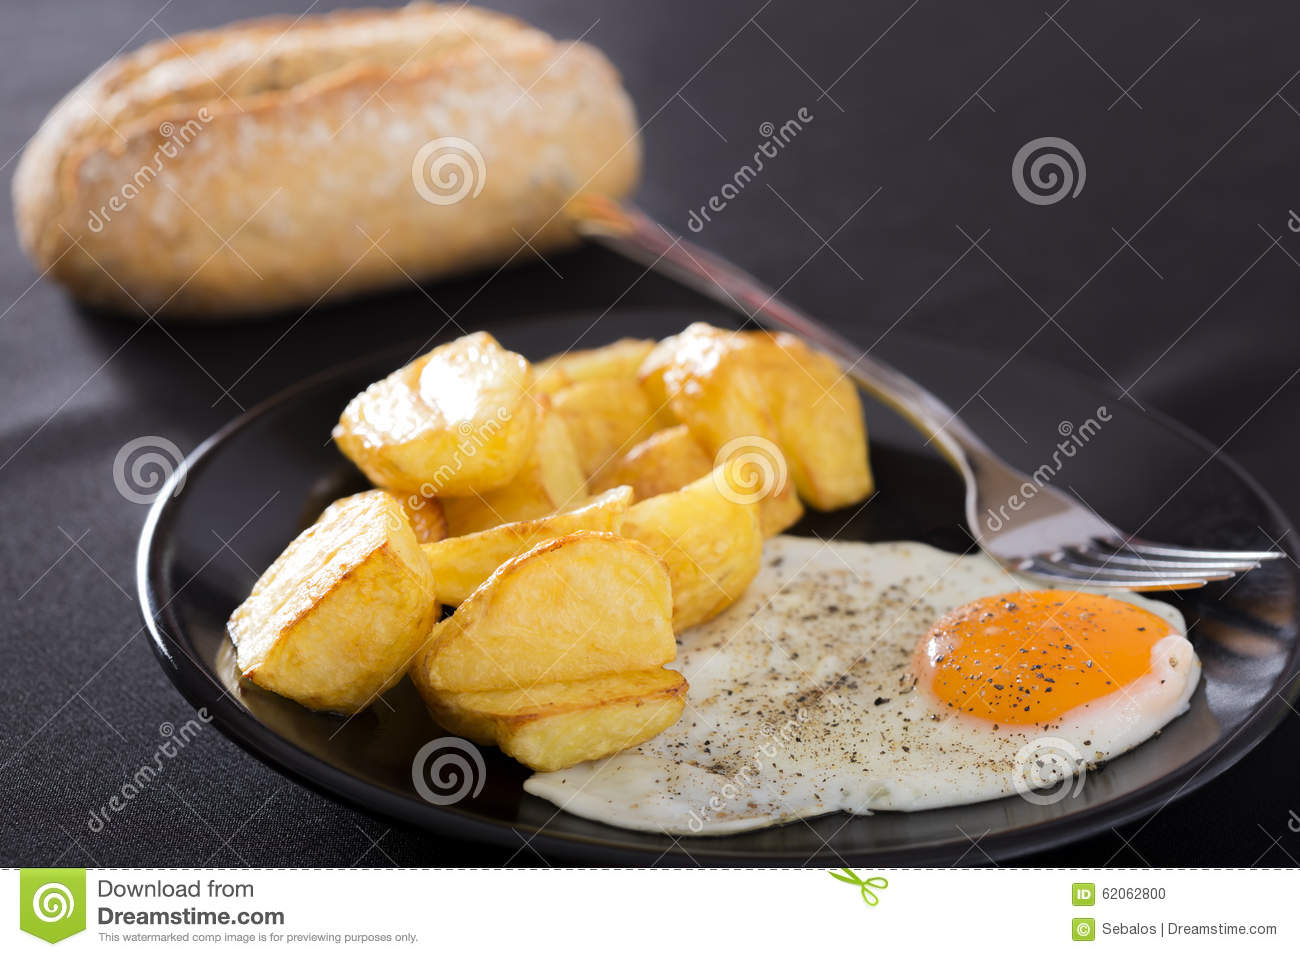 Breakfast with fried potato and eggs on a dark plate.